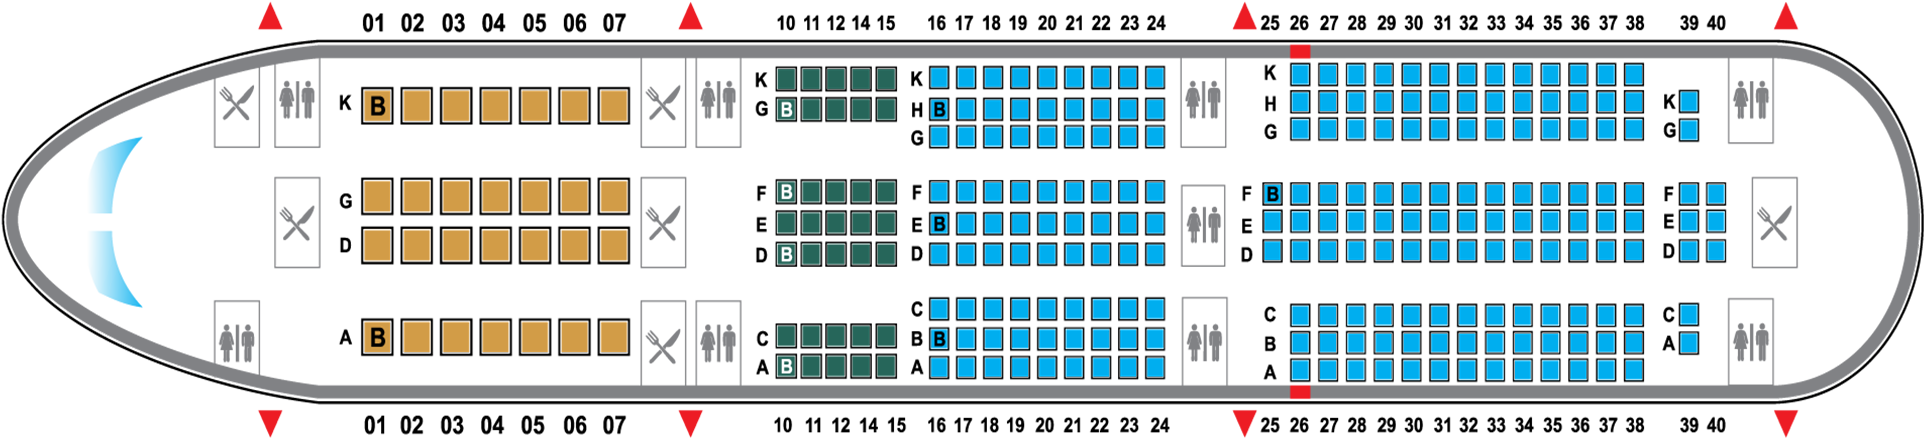 SEAT MAP BOEING 787